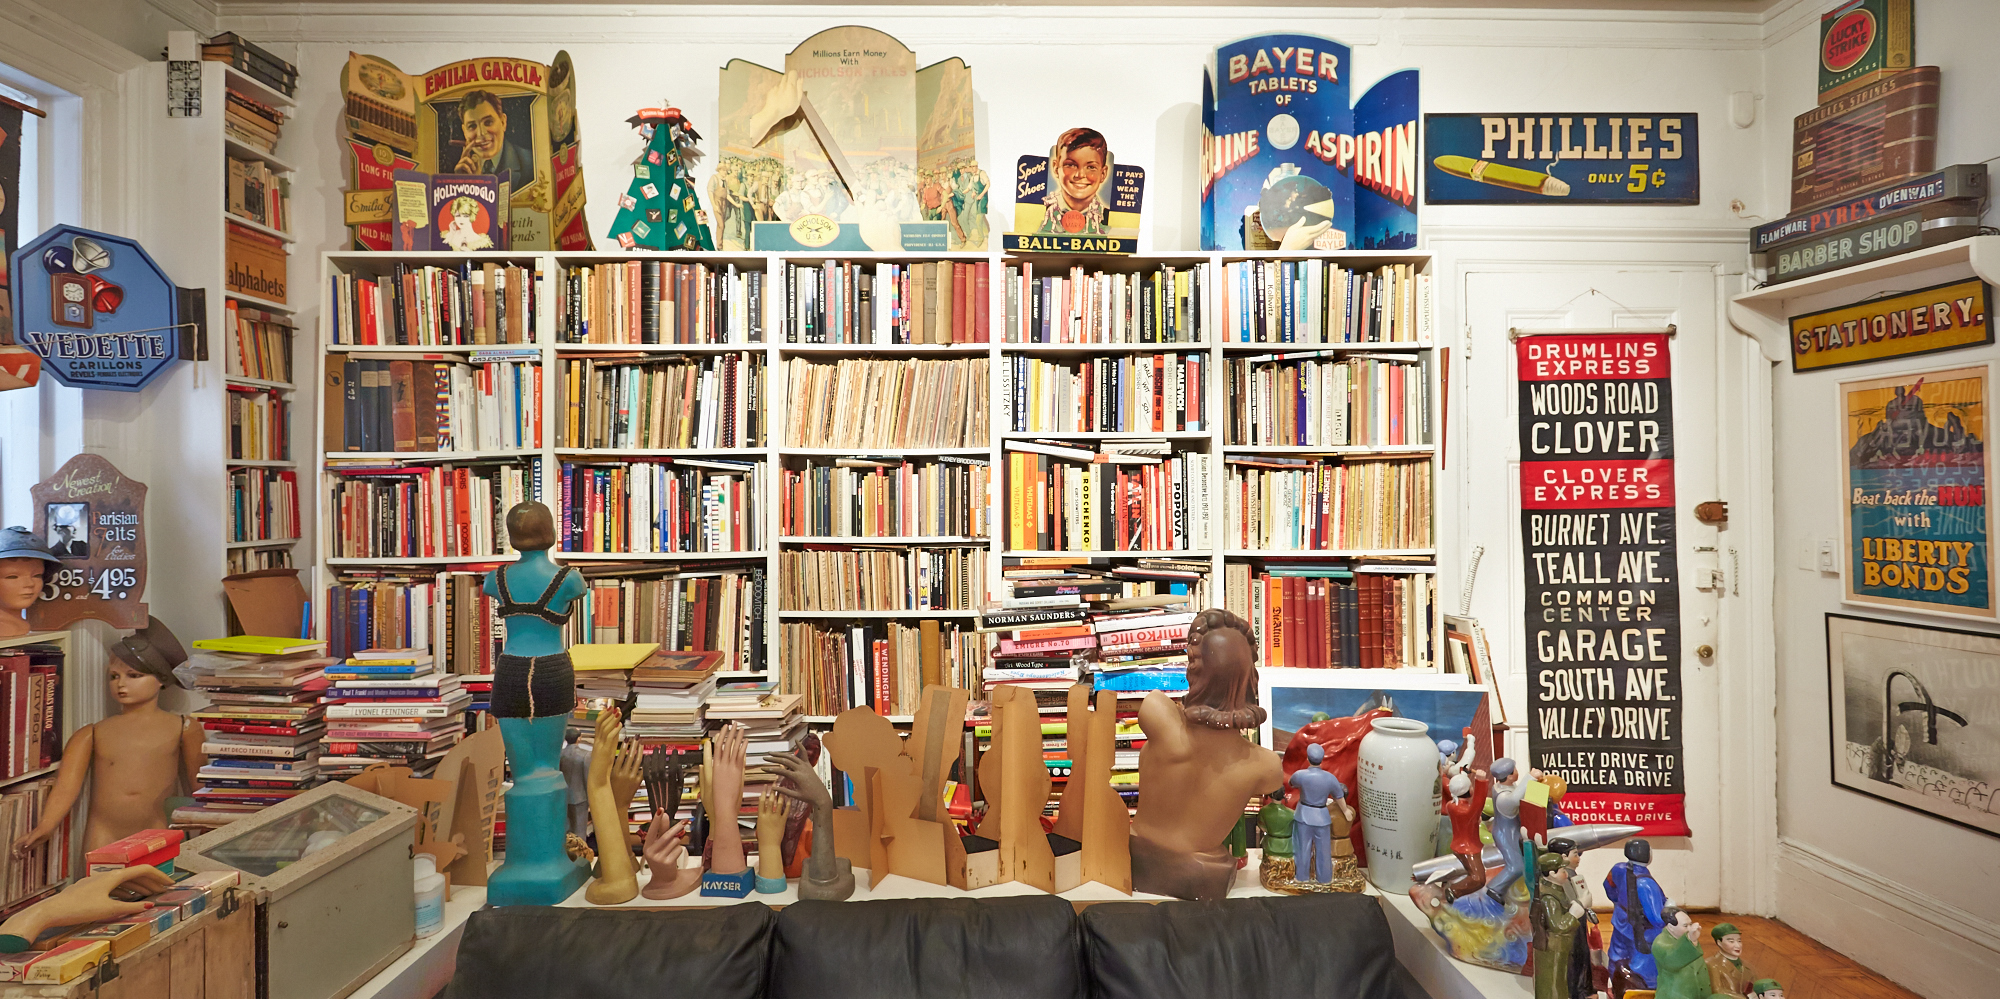 """Books not authored by Steve. He sometimes refers to his studio as """"The Cave,"""" perhaps because of the stacks of books growing up from the floor like stalagmites.(Click on photo to enlarge)"""